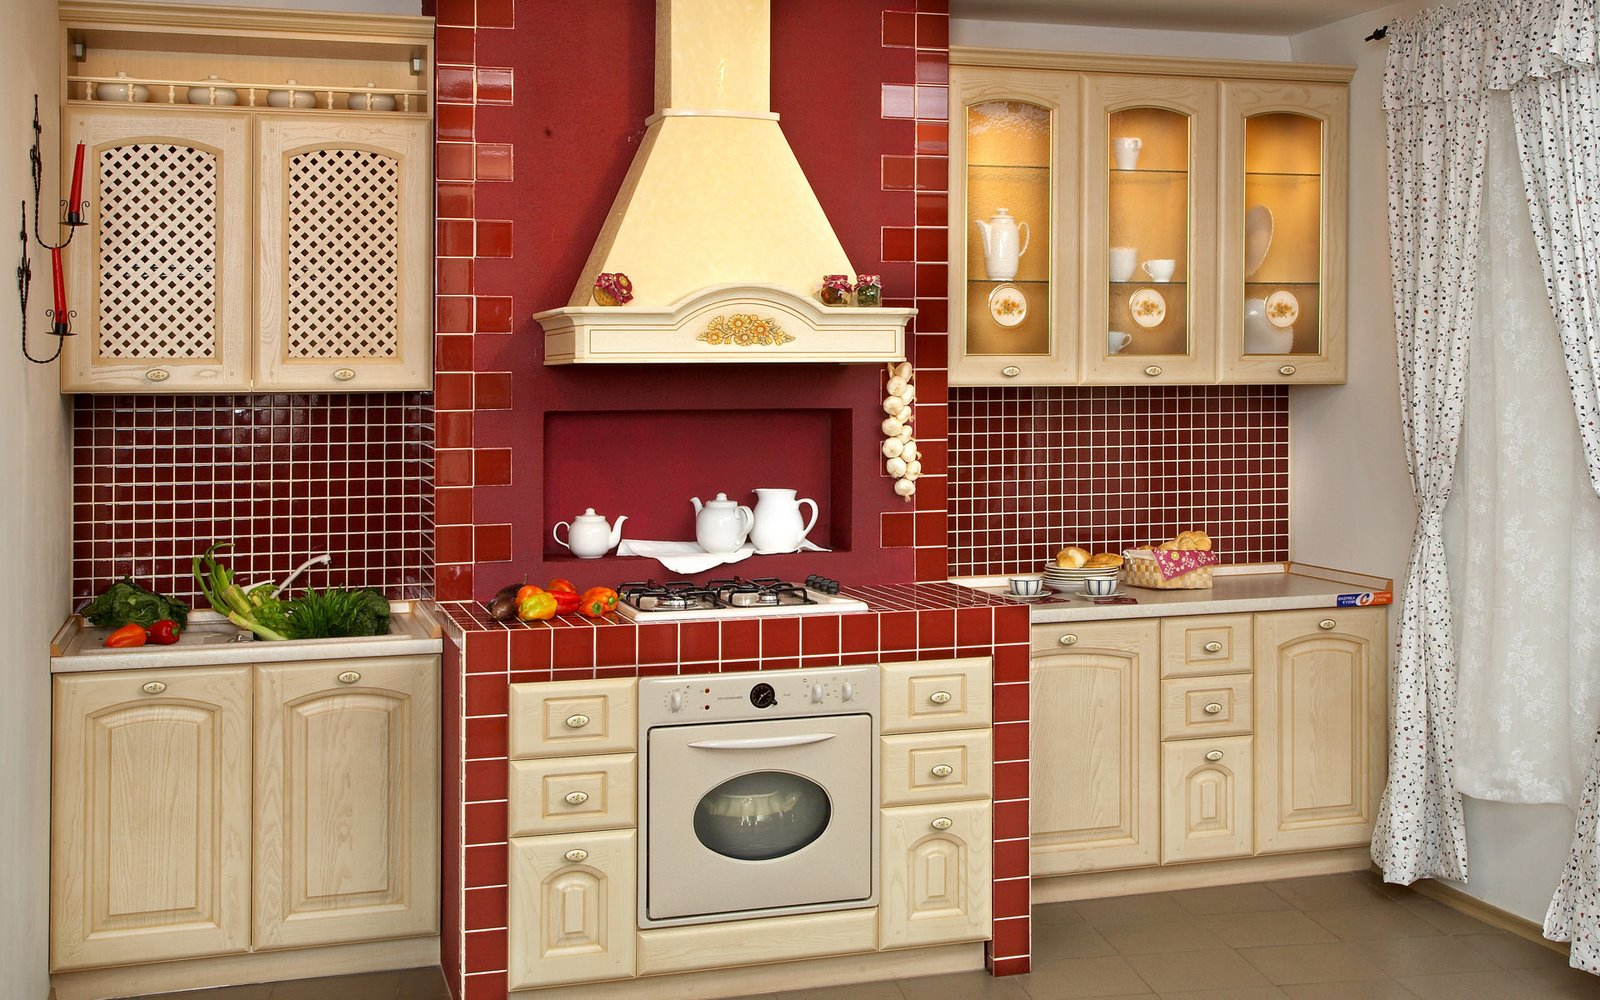 Modern kitchen designs in red interior decorating home for Kitchen designs cabinets